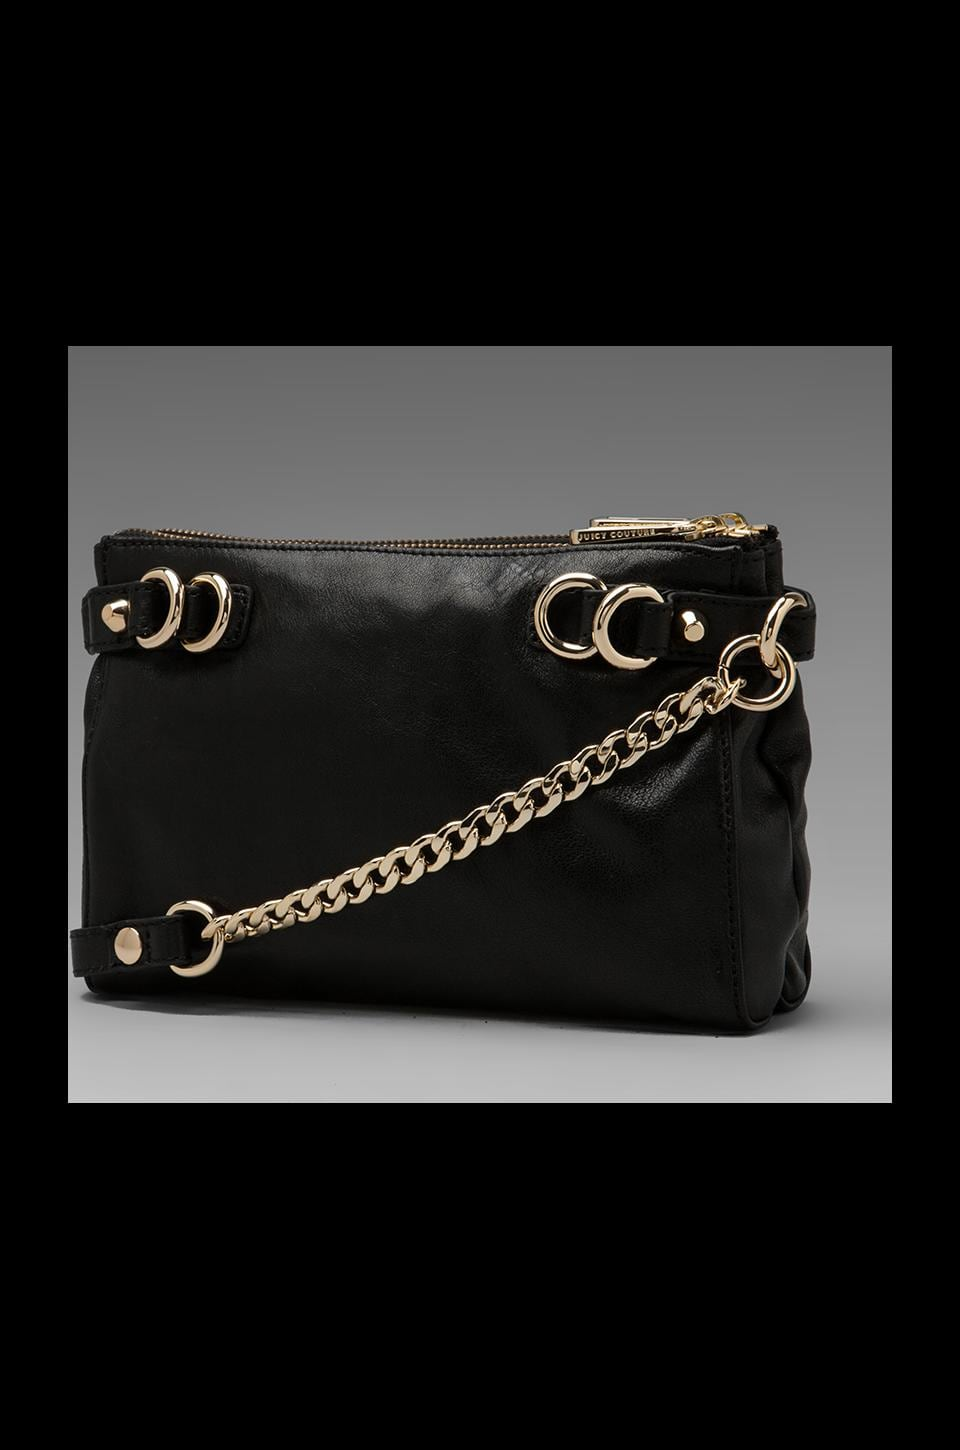 Juicy Couture Dylan Leather Crossbody in Black